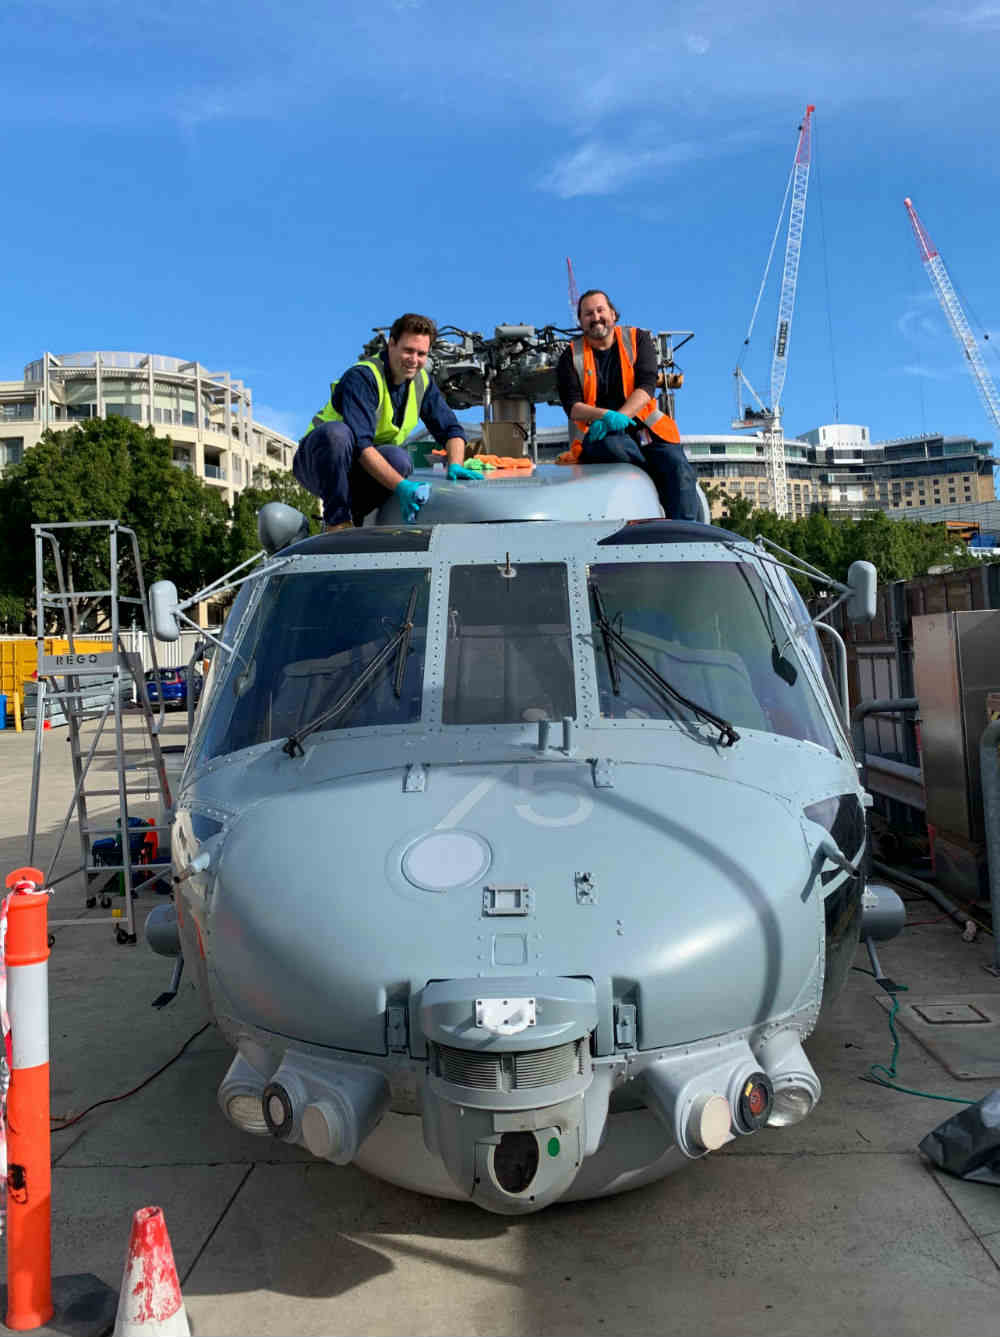 Conservators Nick Flood and Jeff Fox on top of the Seahawk checking external surfaces not visible from the ground